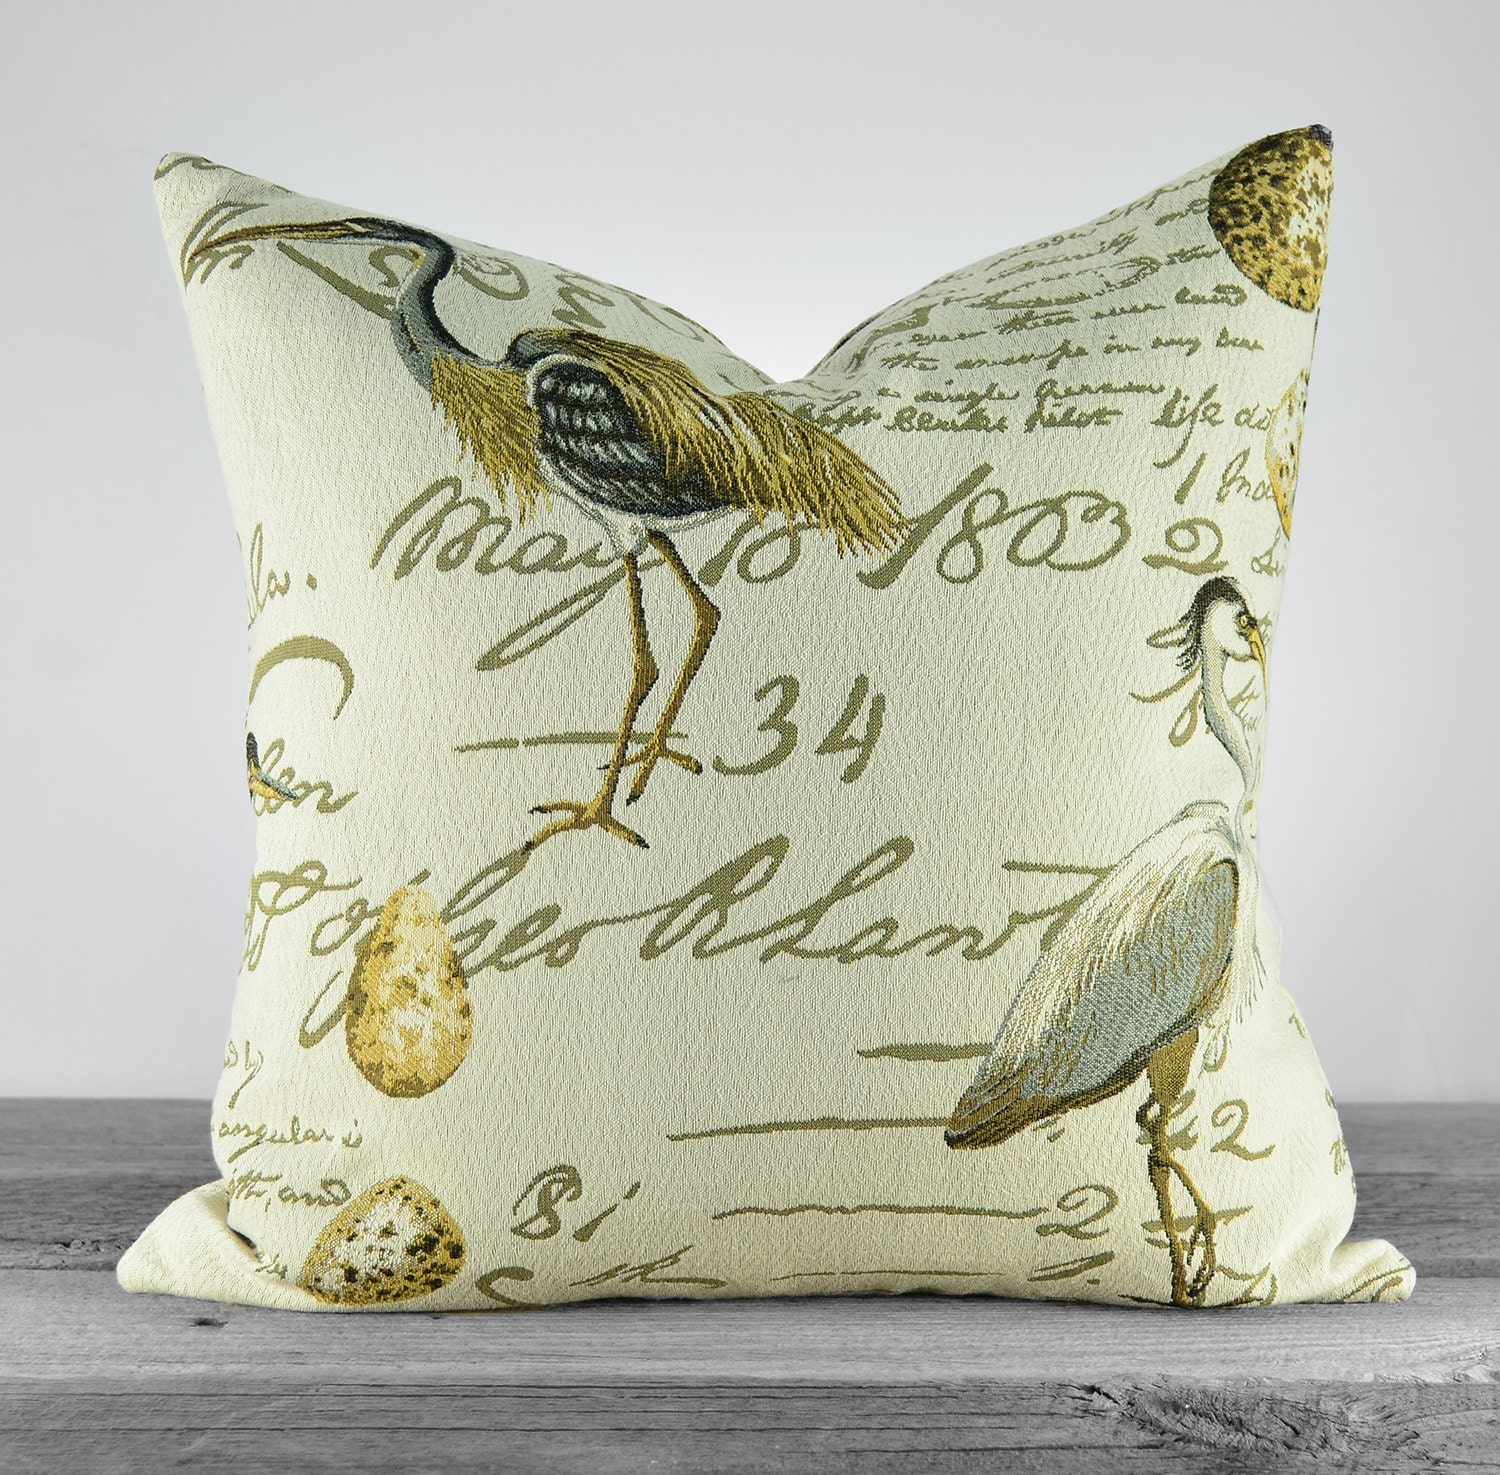 Throw Pillows With Birds : Decorative Bird Pillow Cover Coastal Birds with Script